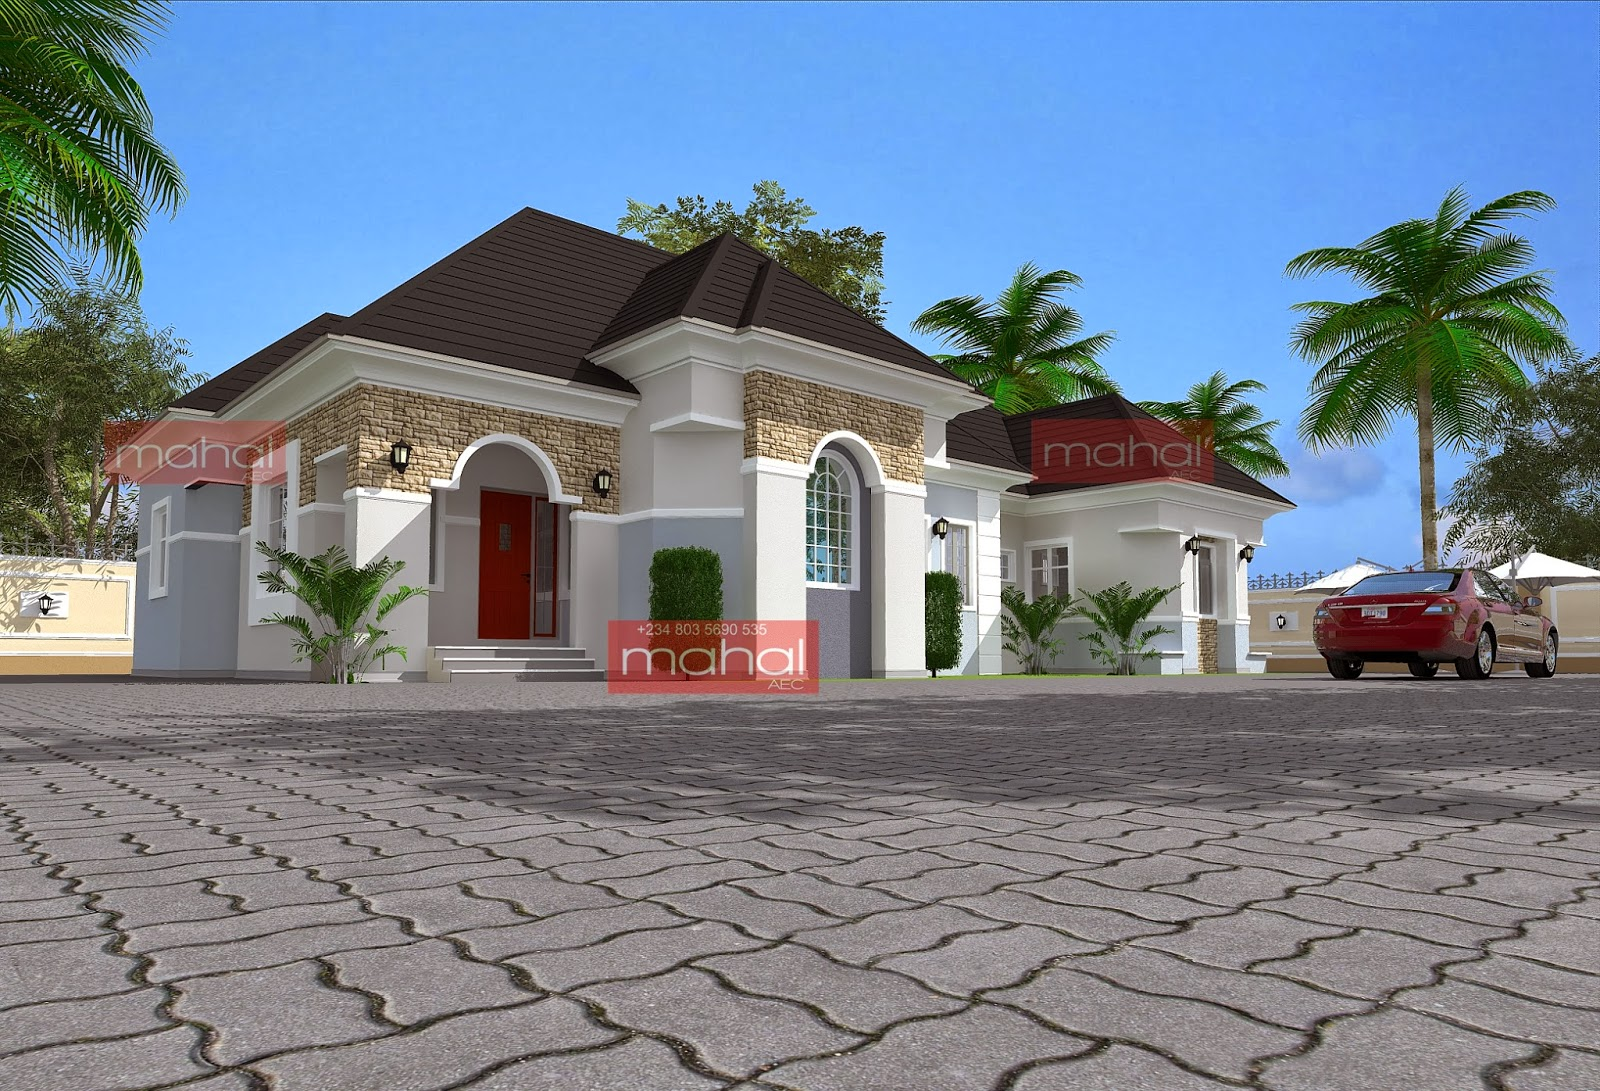 3 bedroom bungalow plan in nigeria joy studio design for Nigeria building plans and designs